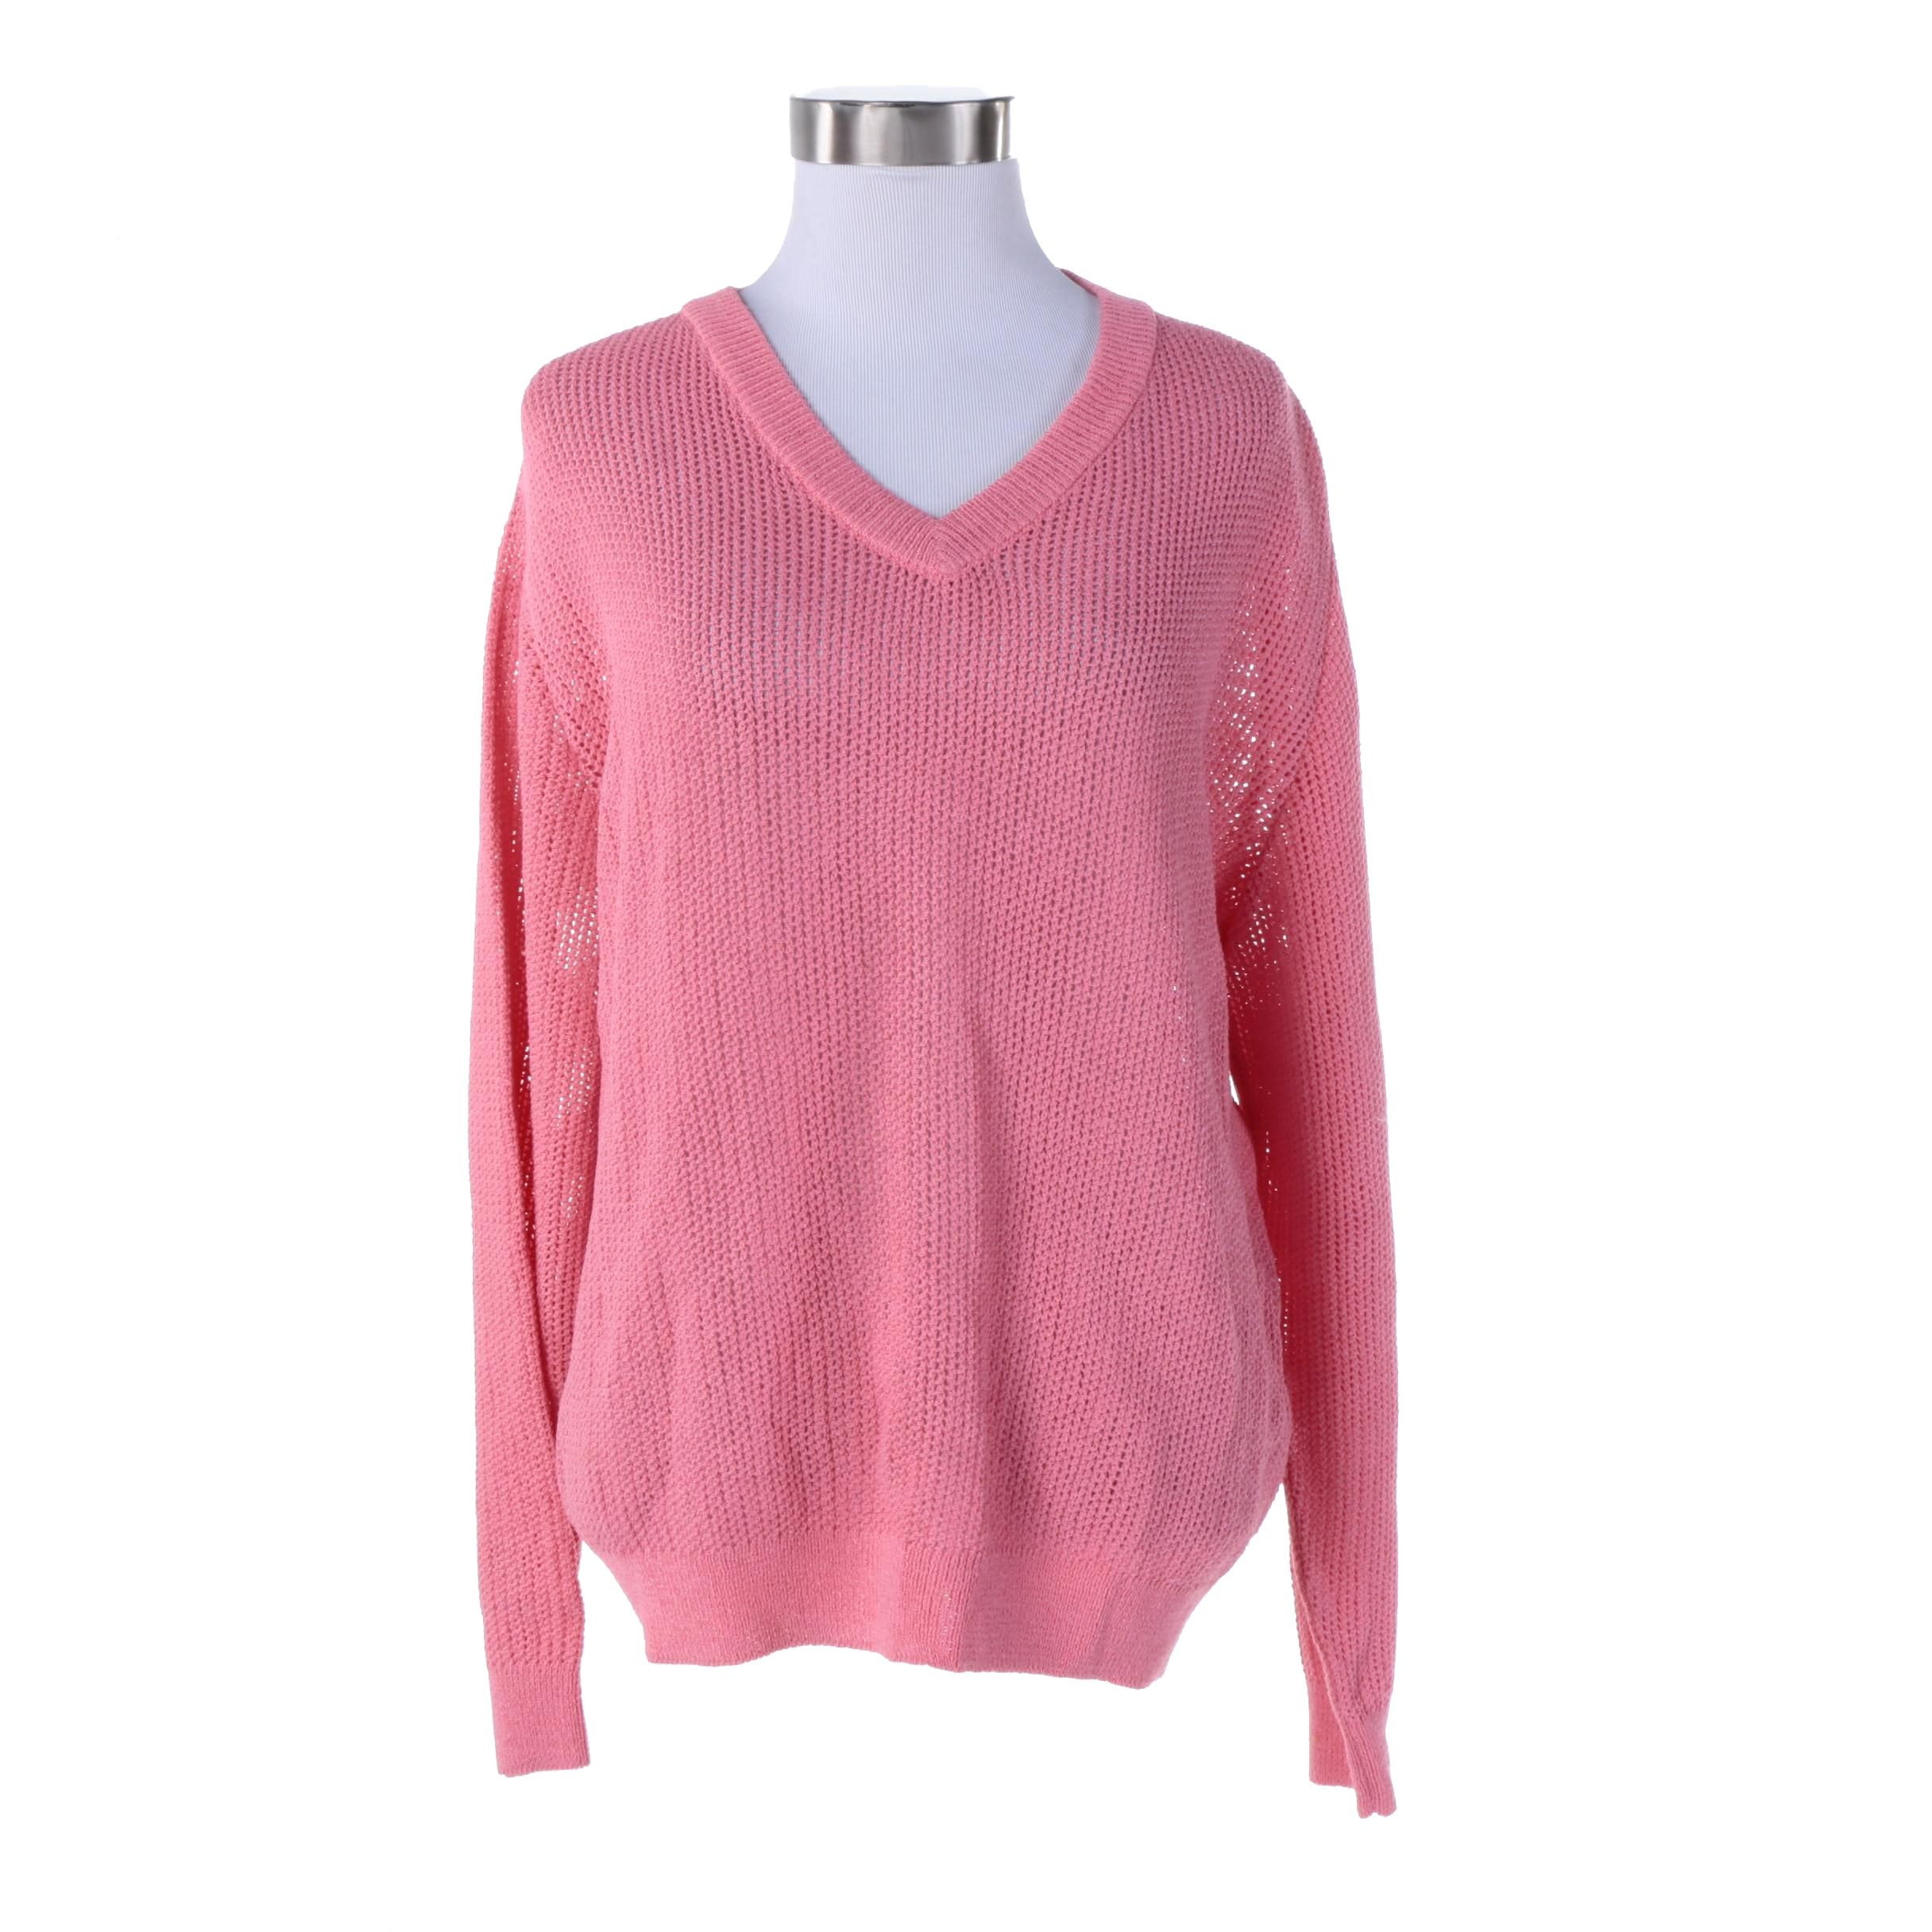 St. John Pink Knit Sweater